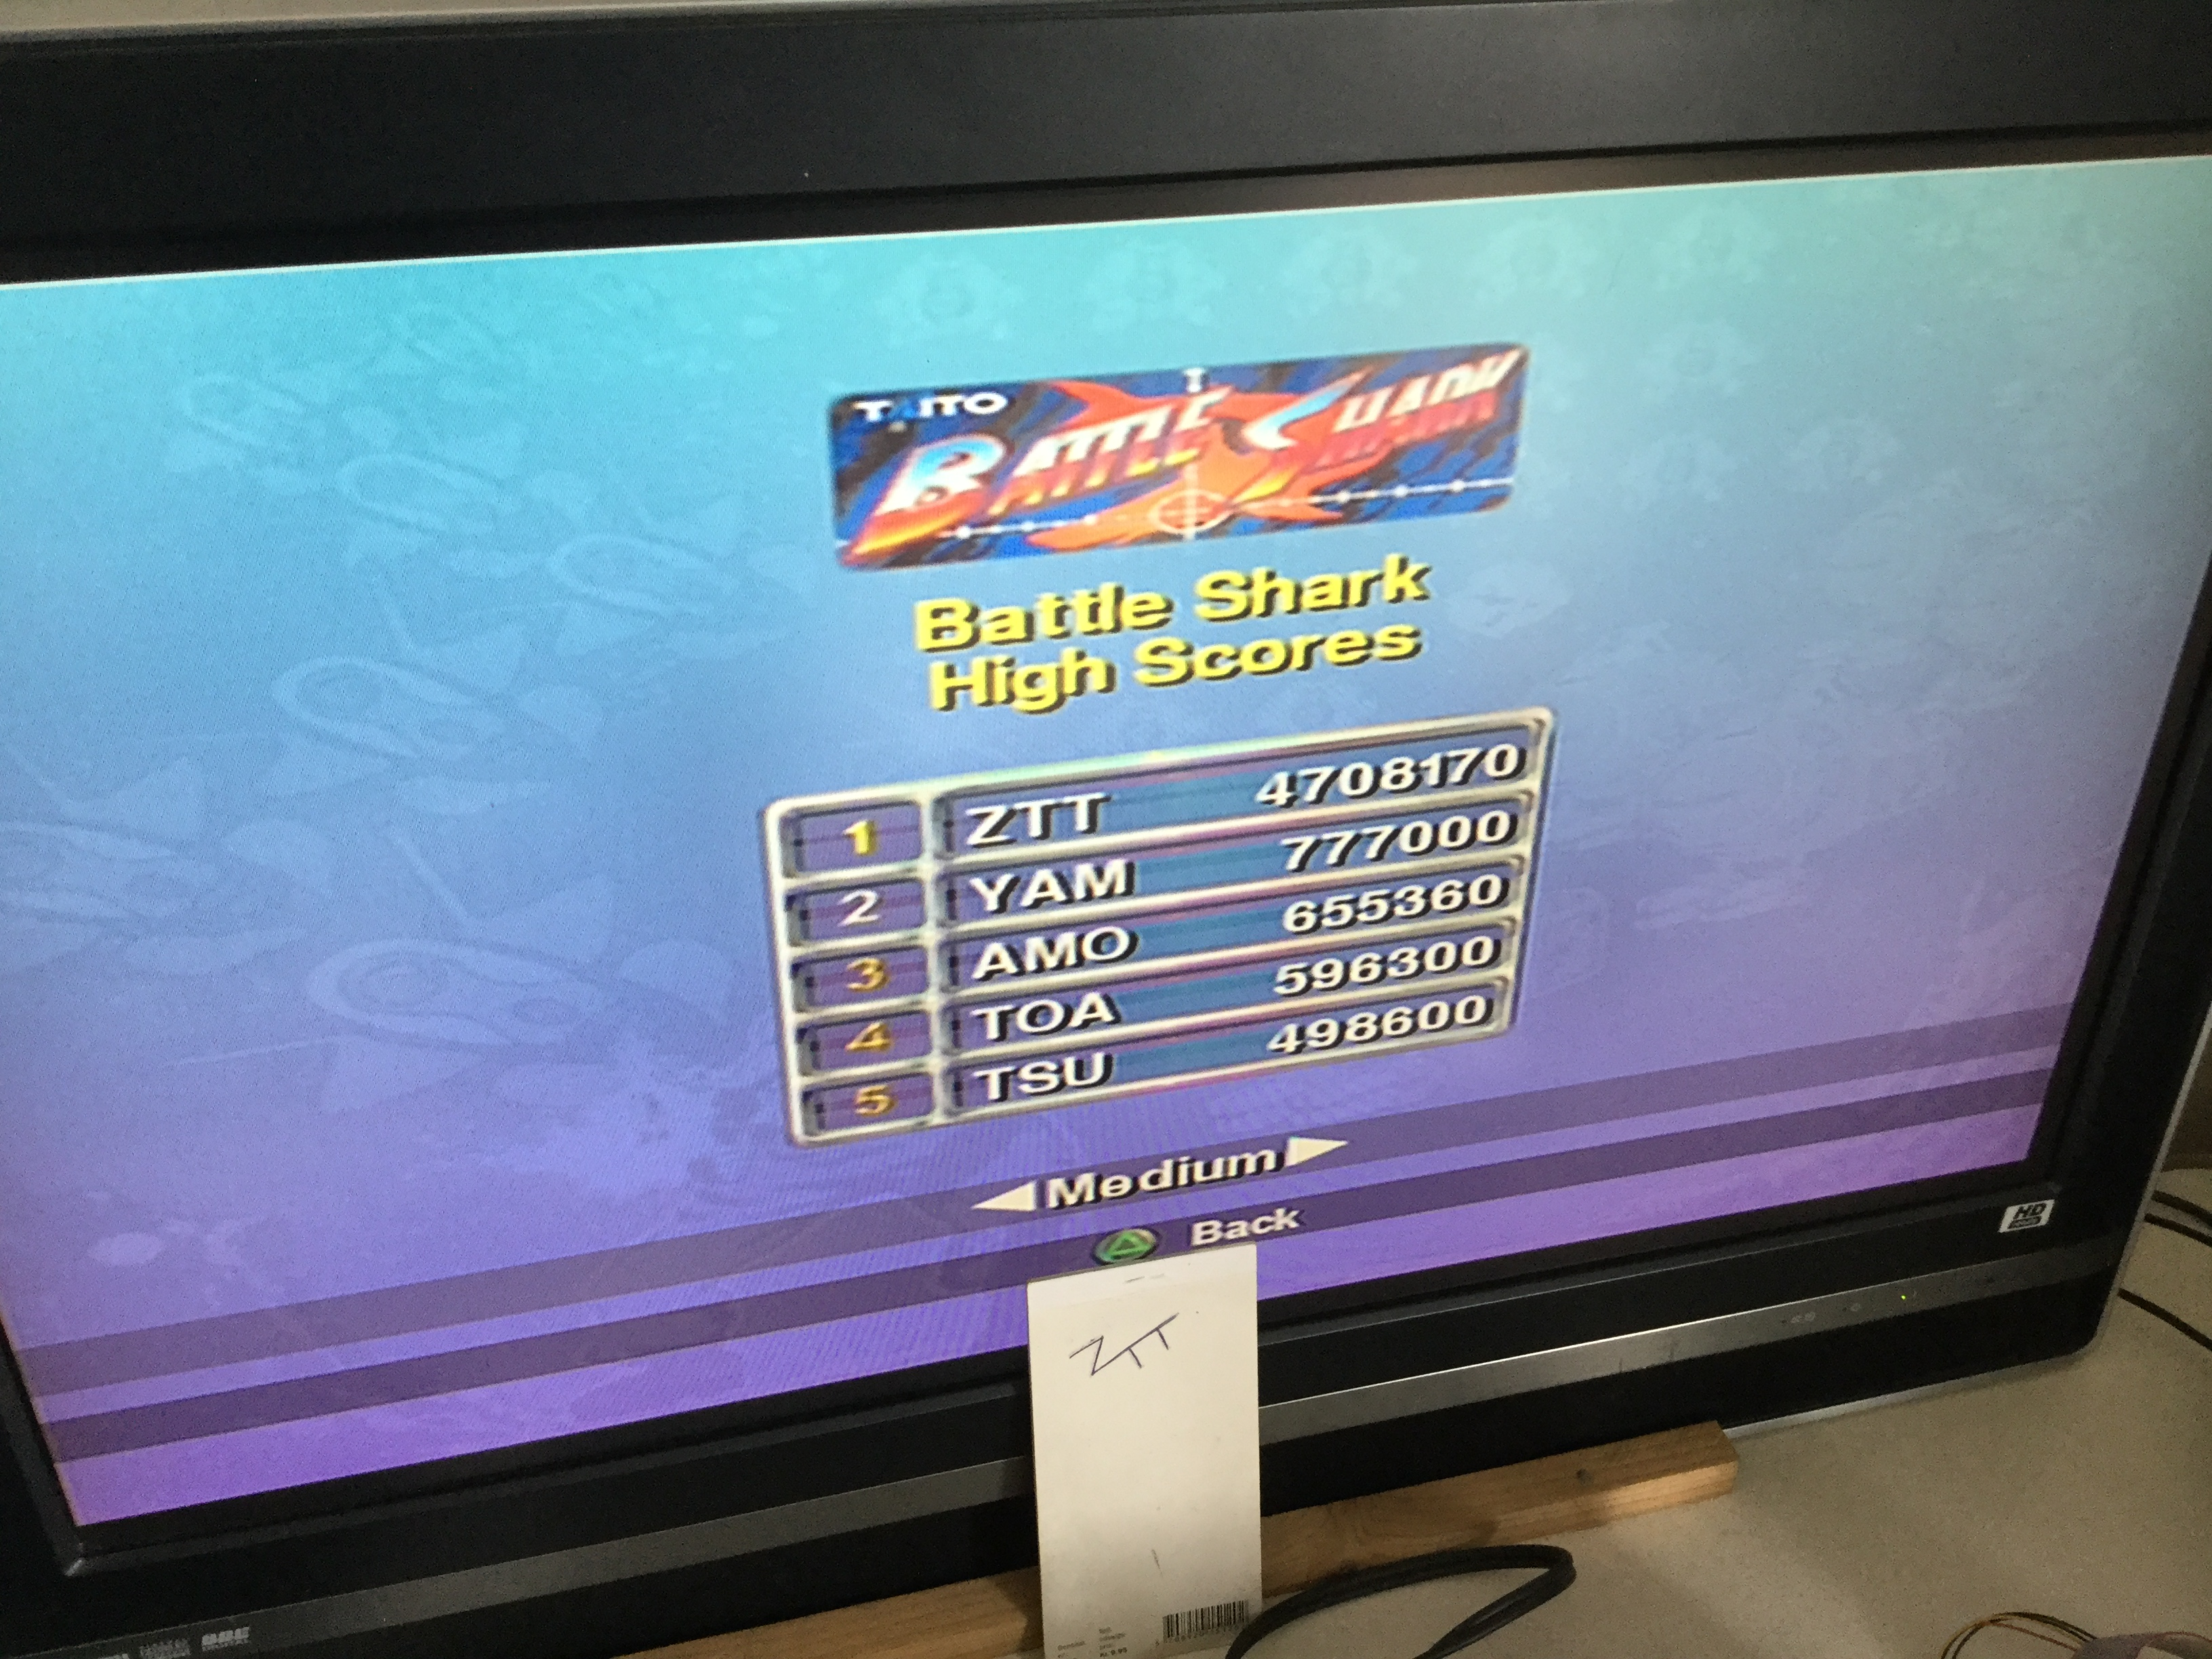 Frankie: Taito Legends: Battle Shark [Medium] (Playstation 2) 4,708,170 points on 2018-03-17 06:11:38